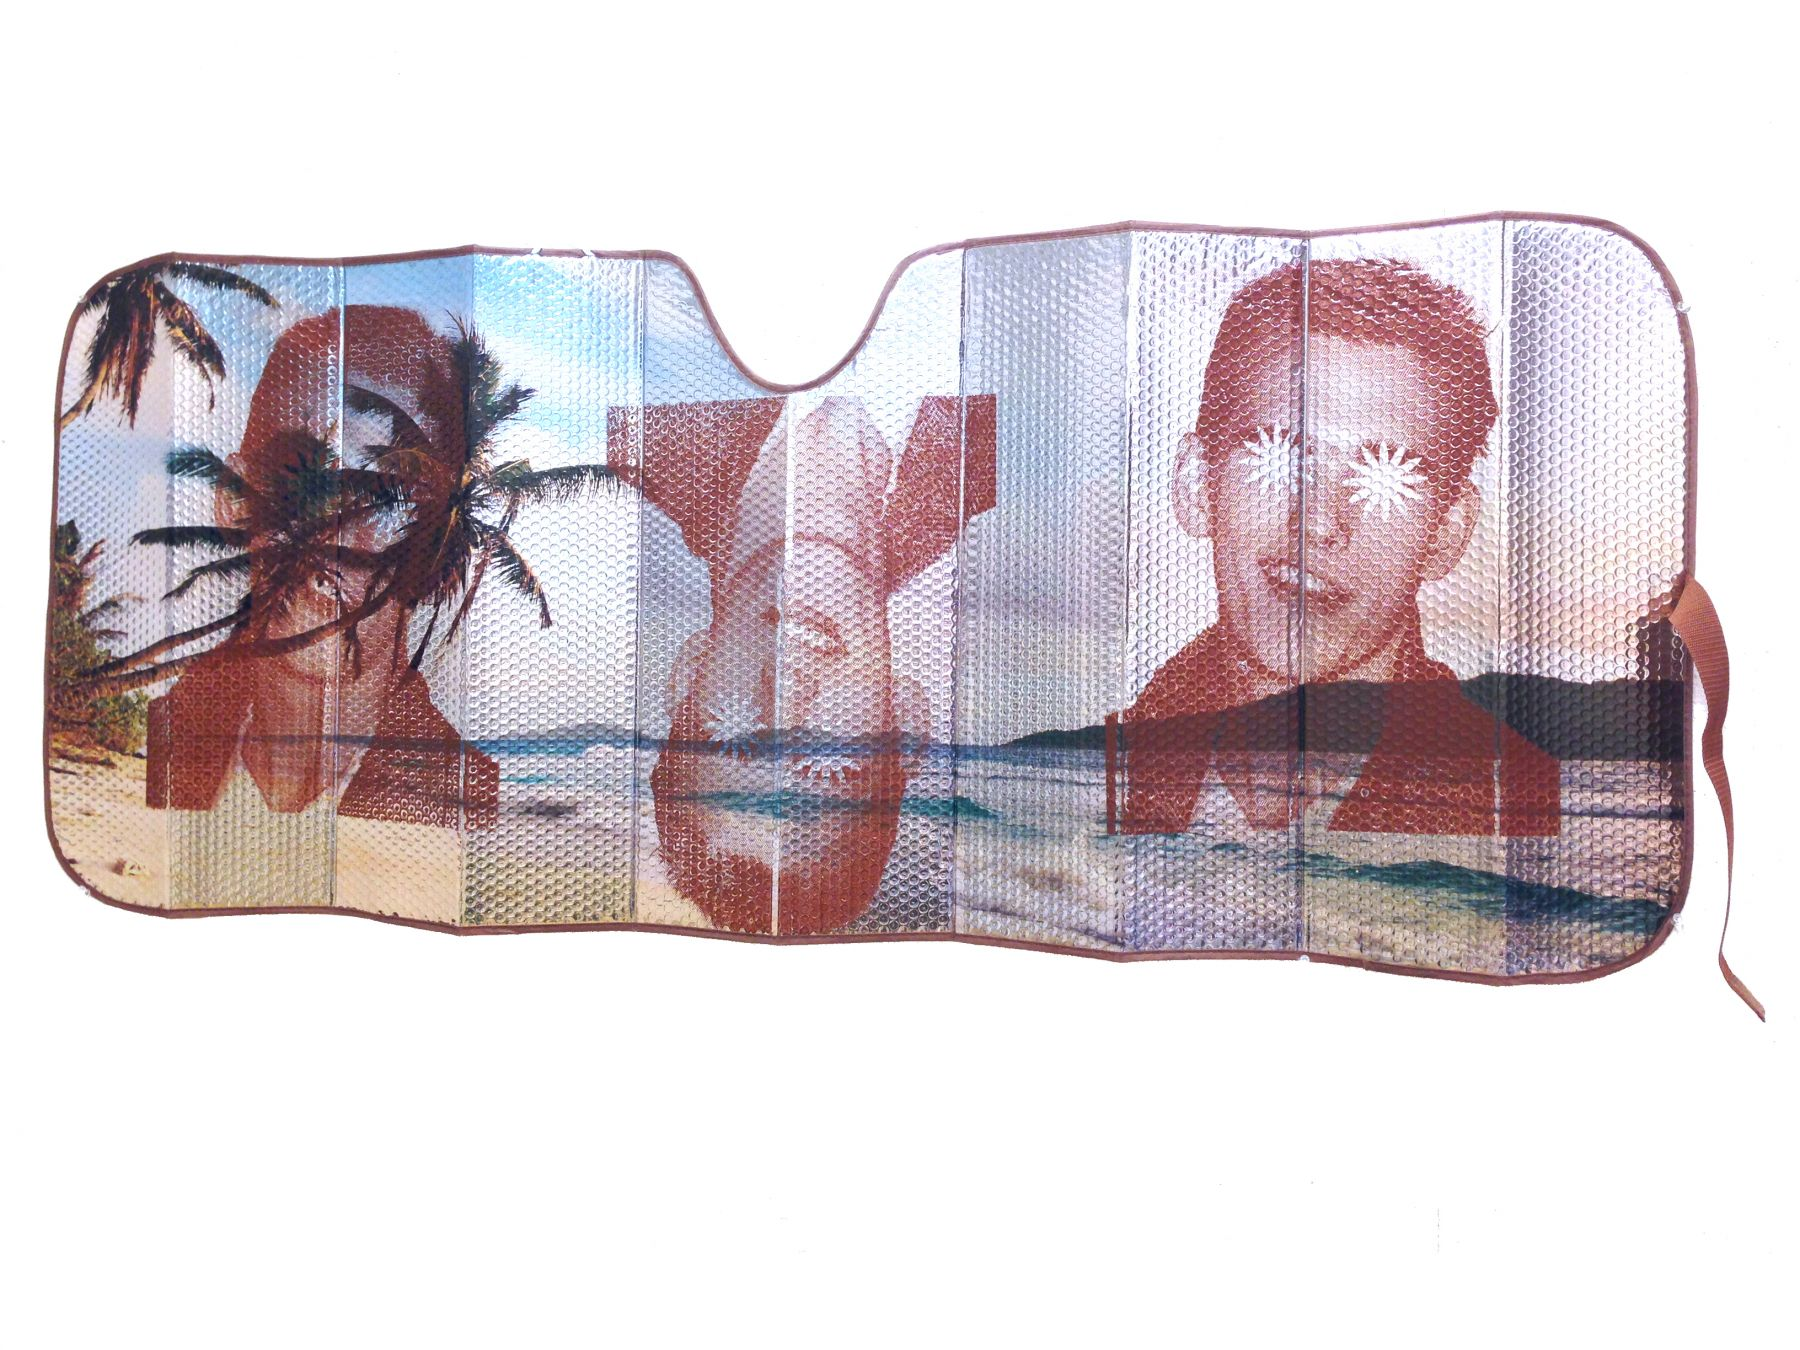 CHRIS WILLIFORD_Sunshade II (Honeymoon)